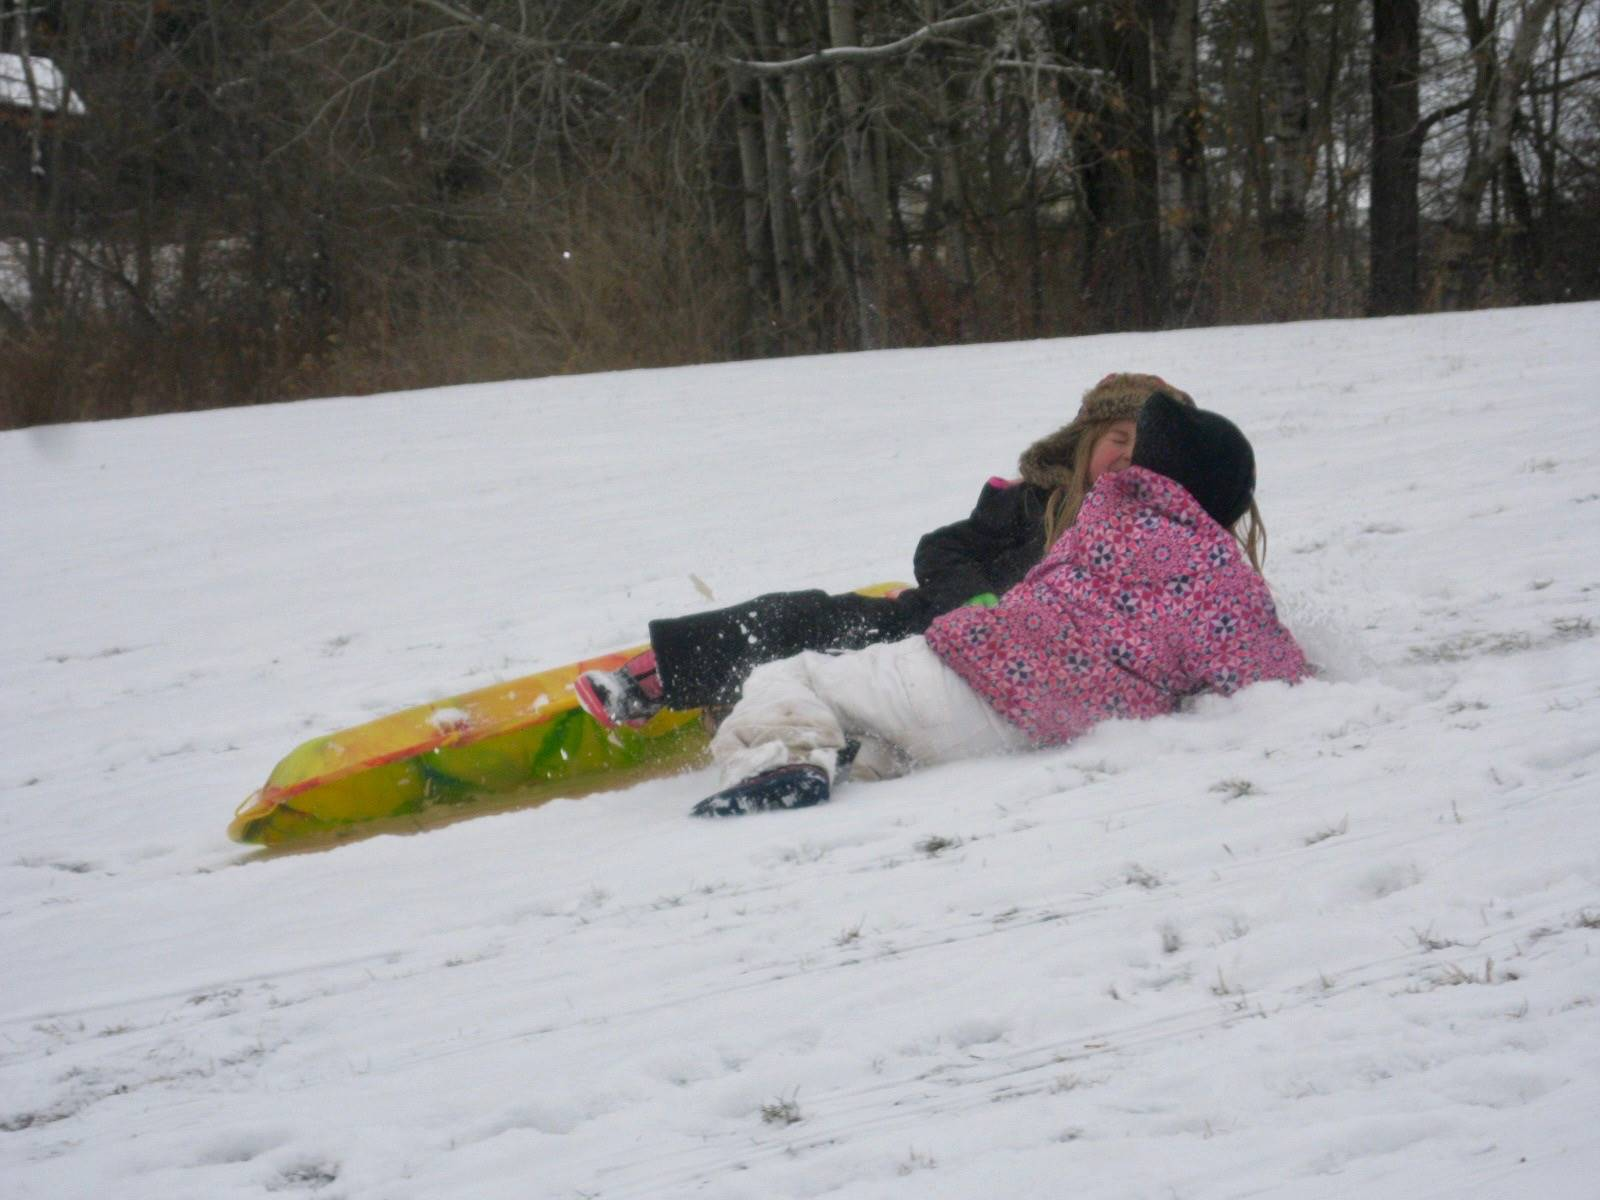 2 students crashed during sledding on the hill.